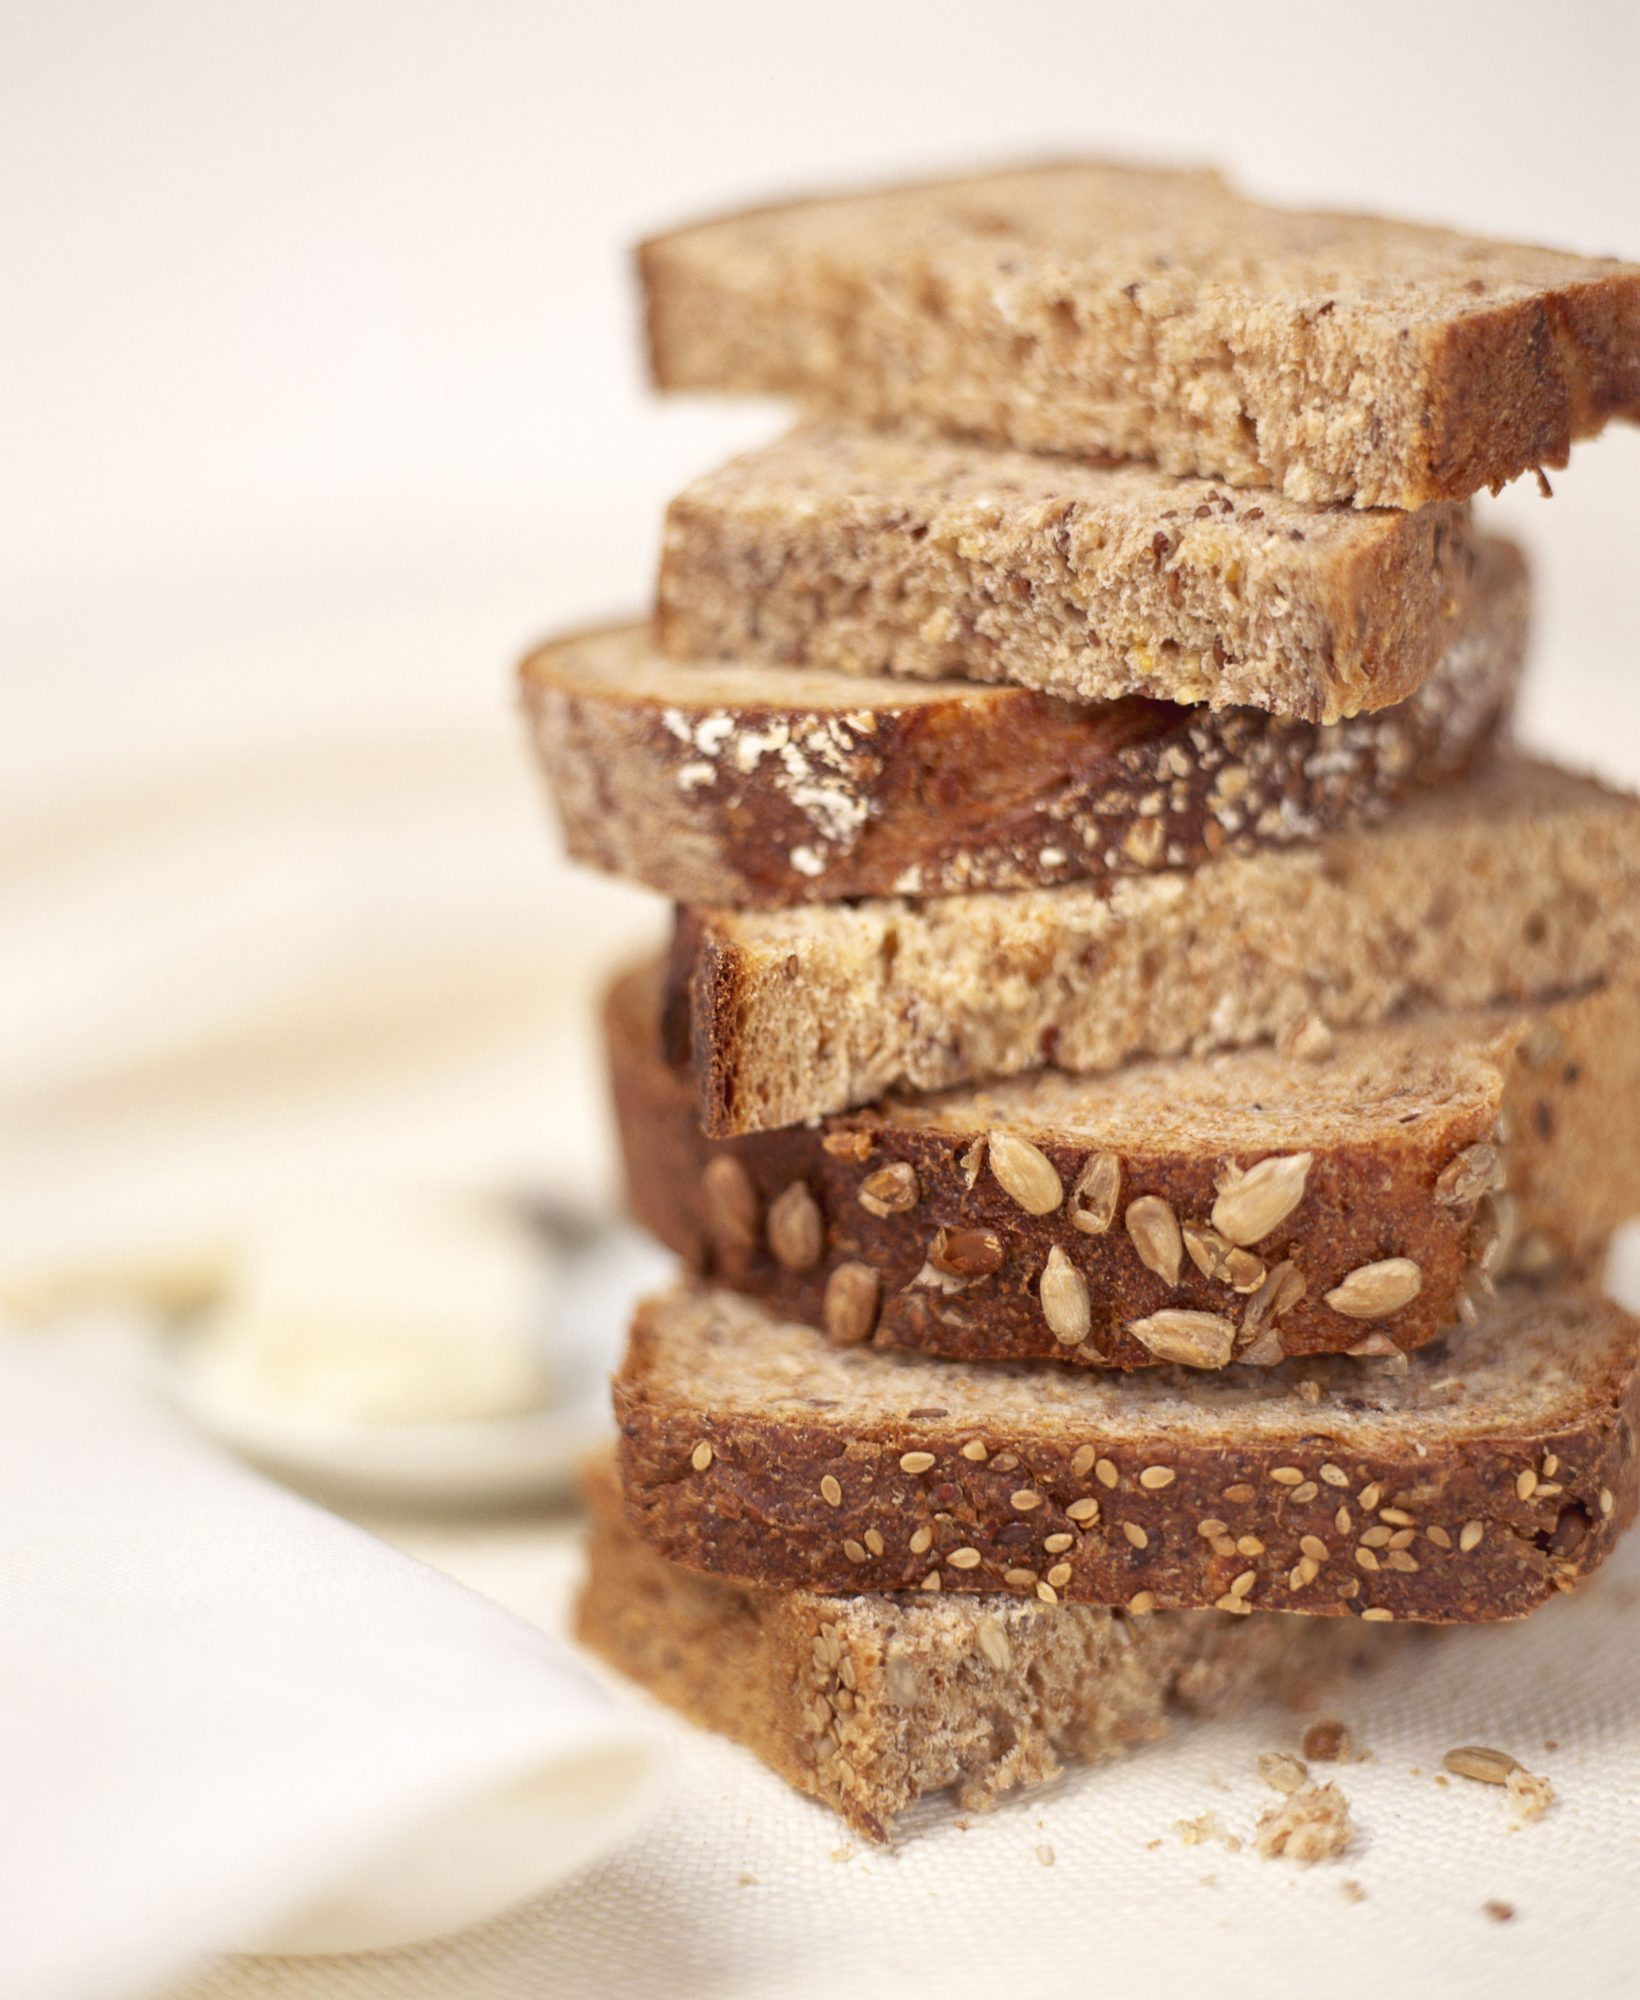 The Case Against 'Whole Wheat' and 'Whole Grain' Bread